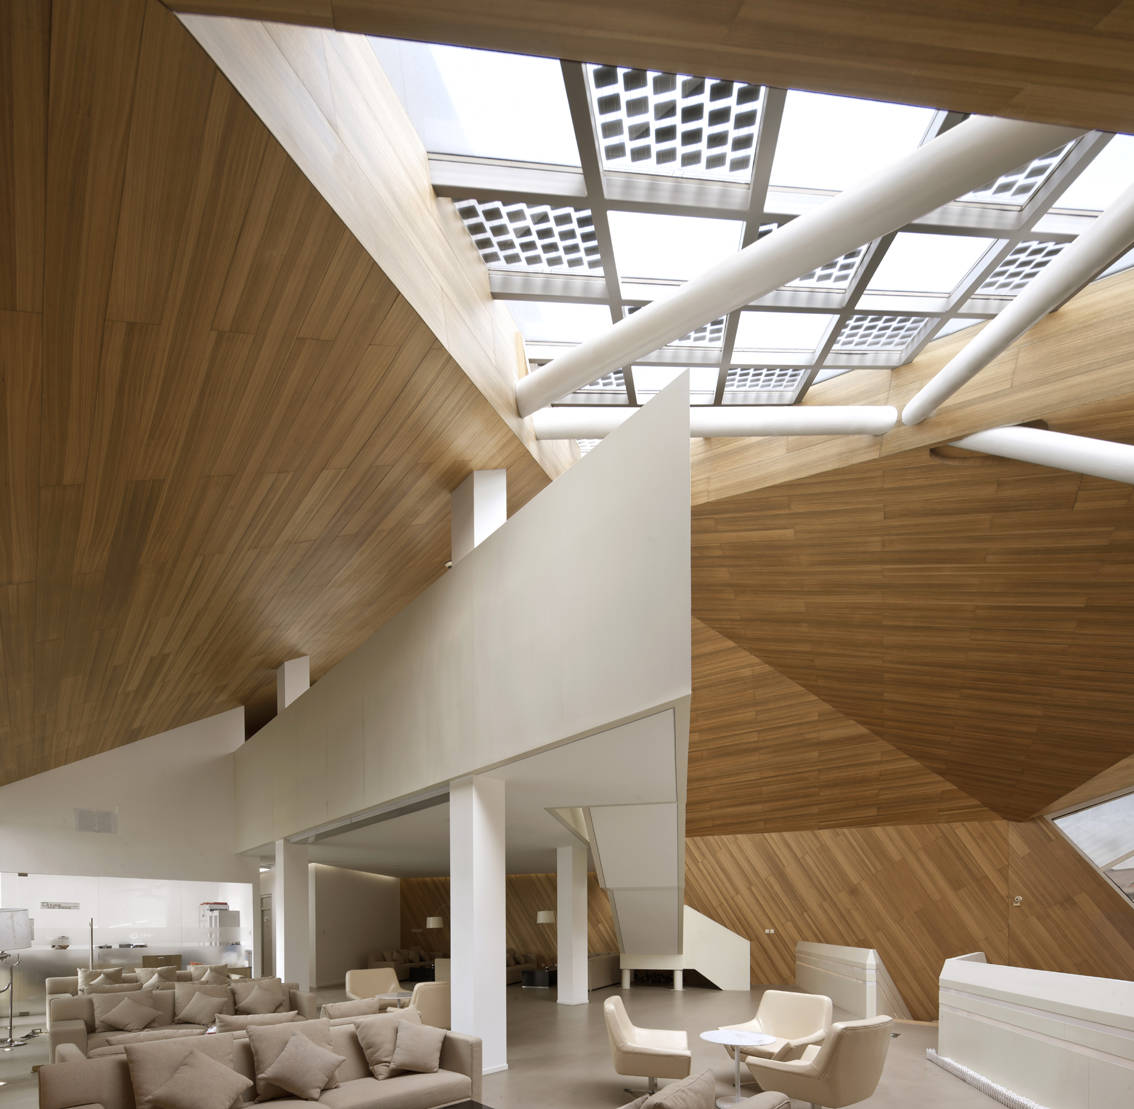 The Cocoon: Low Energy Architecture by Mochen Architects & Engineers in Tianjin, China modern living